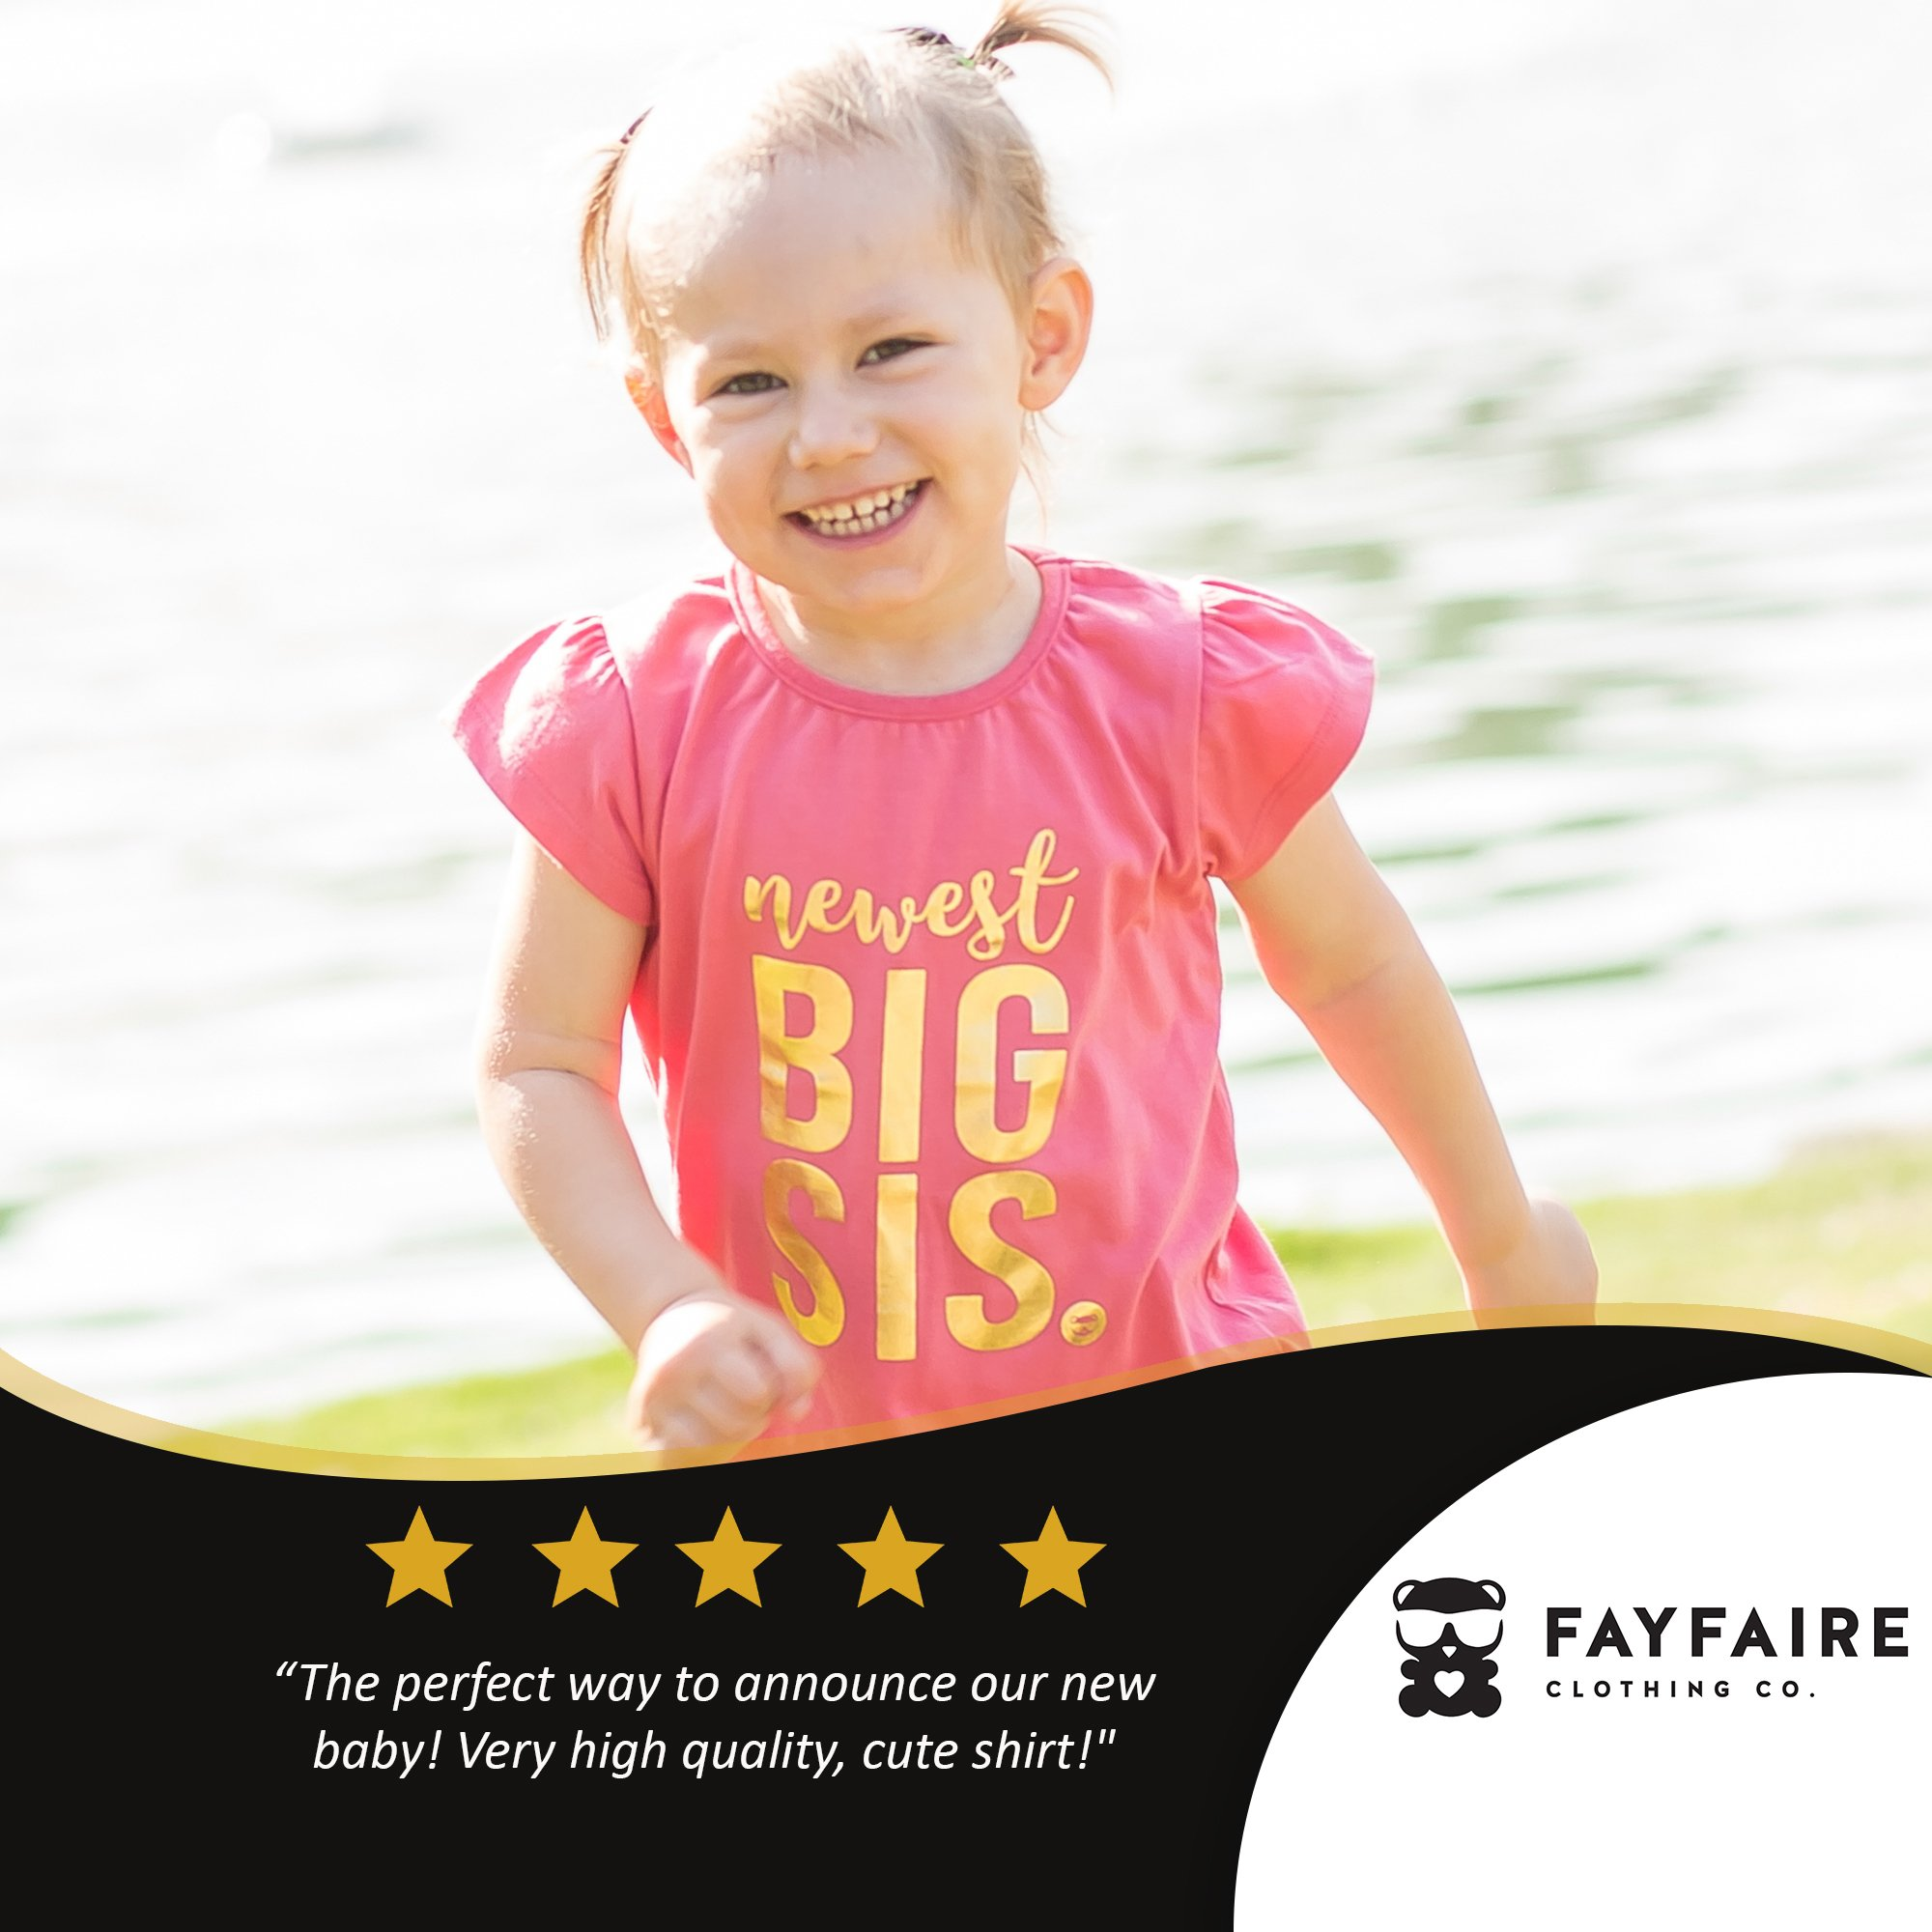 Fayfaire Big Sister Shirt Outfit : Boutique Quality Pregnancy Announcement Newest Big Sis 3T by Fayfaire (Image #2)